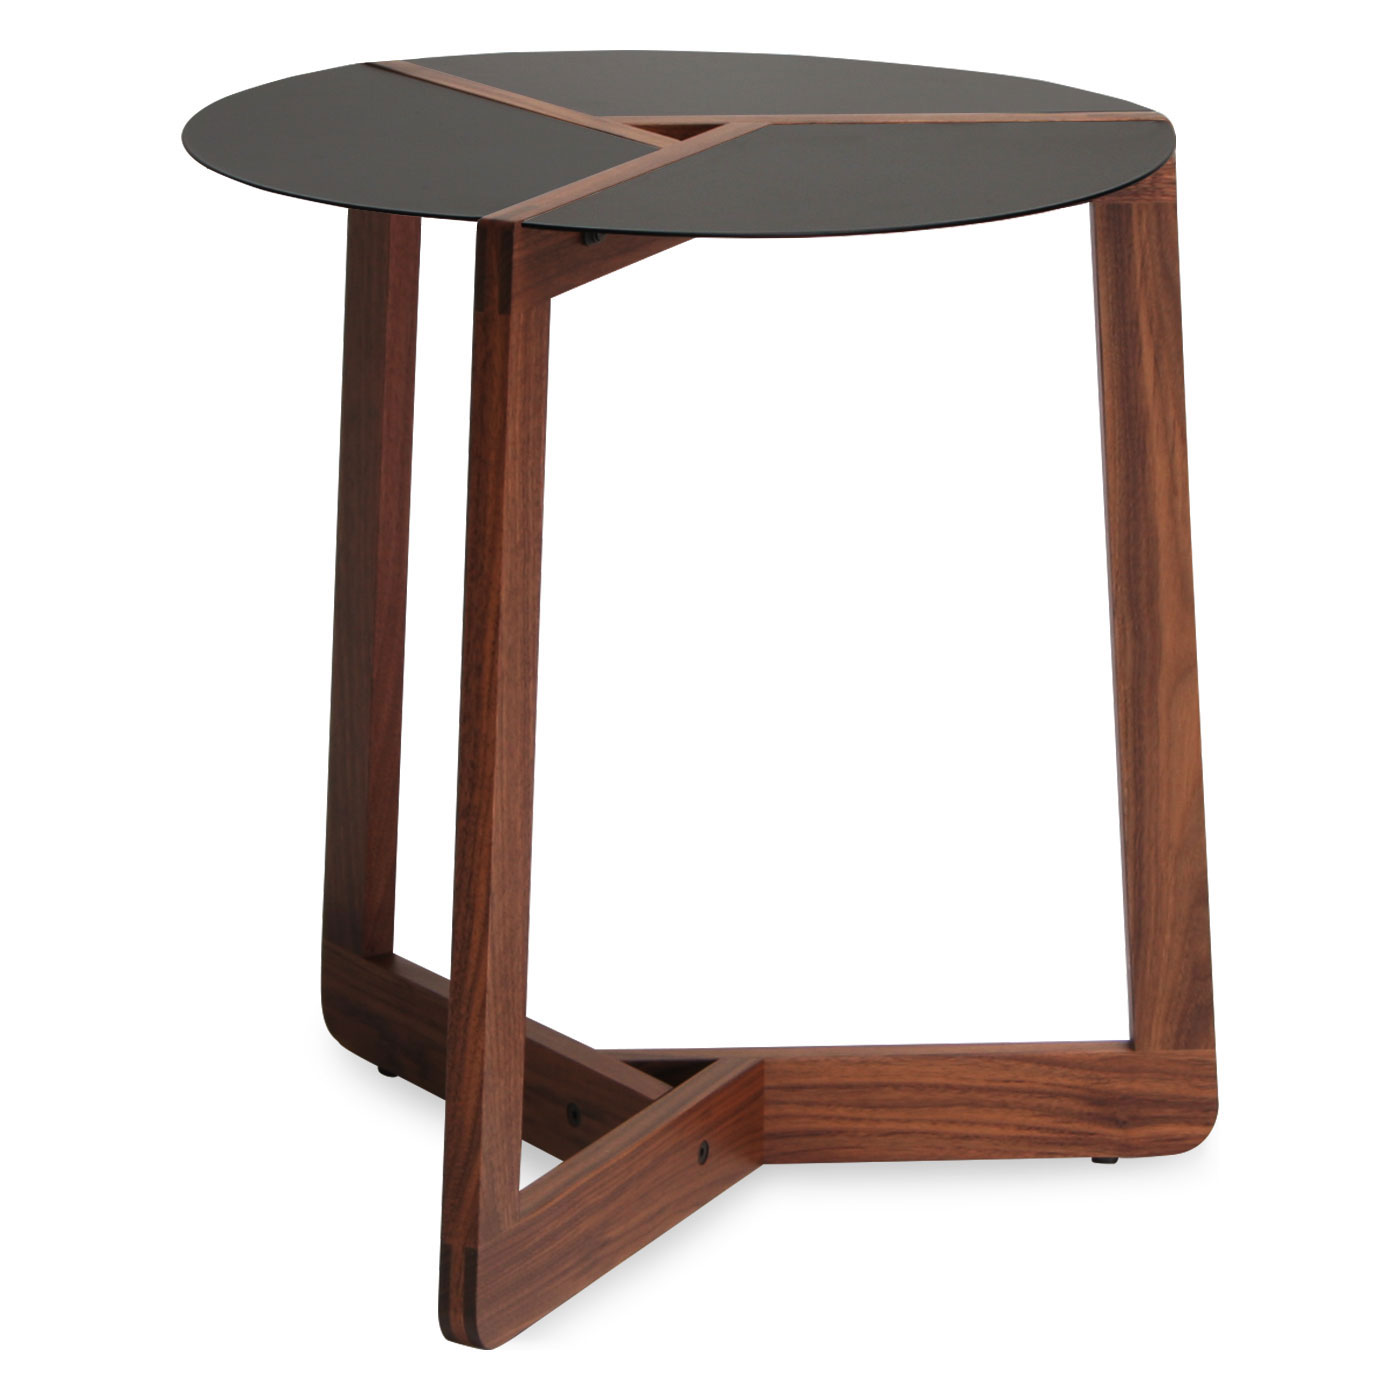 bathroom accent tables probably terrific best the round impressive large end table modern side walnut black plans home glass and chrome coffee sets with charging station ashley